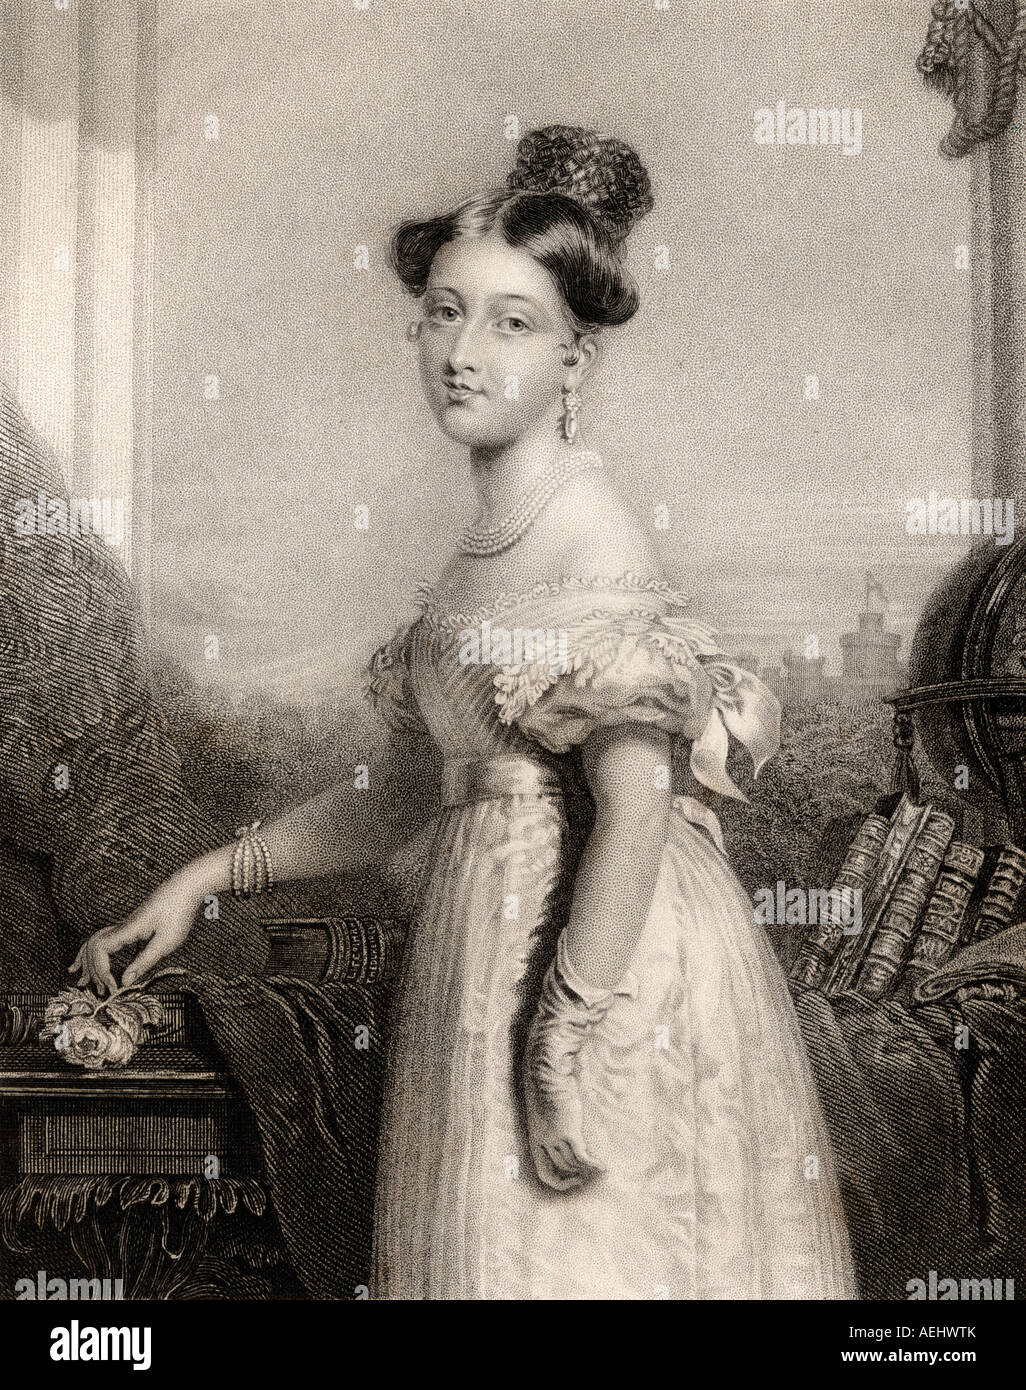 Princess Alexandrina Victoria of Saxe Coburg aged 18 1819 1901 Later Queen Victoria of England - Stock Image